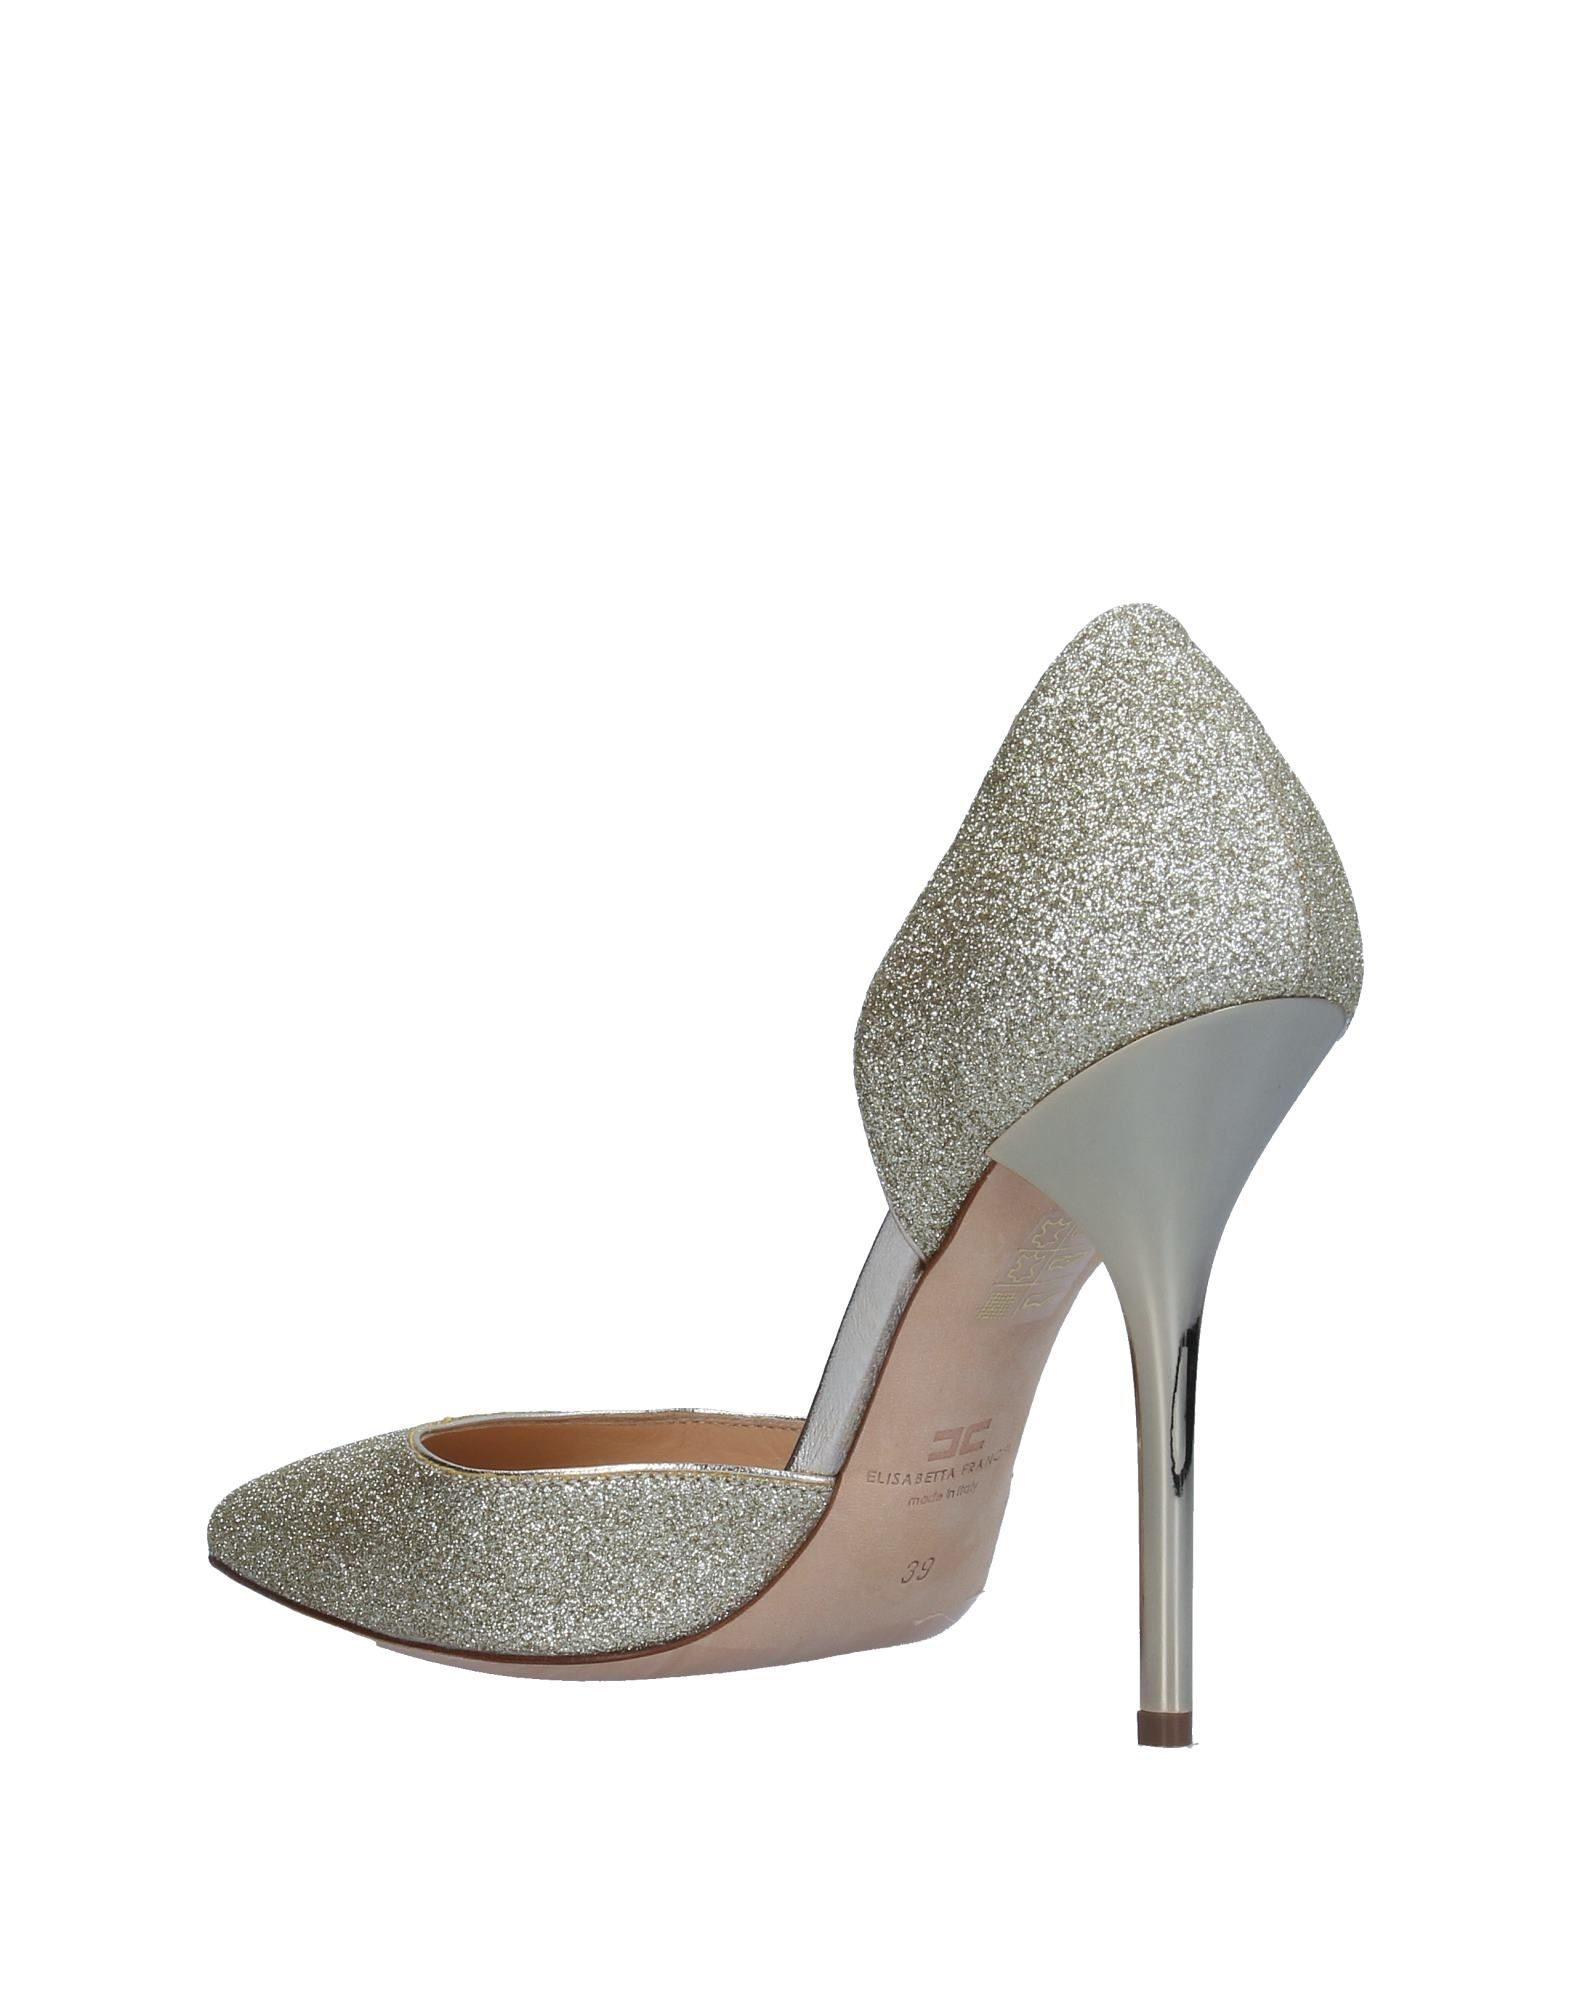 Stilvolle Pumps billige Schuhe Elisabetta Franchi Pumps Stilvolle Damen  11337975BP 12d1a9